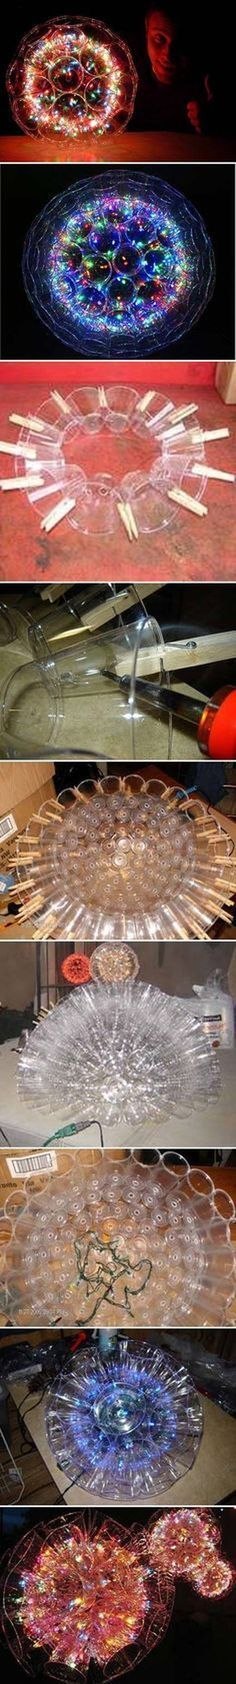 90 Fantastic Creative DIY Chandelier Lamp & Lighting Ideas https://decomg.com/creative-diy-chandelier-lamp-lighting/